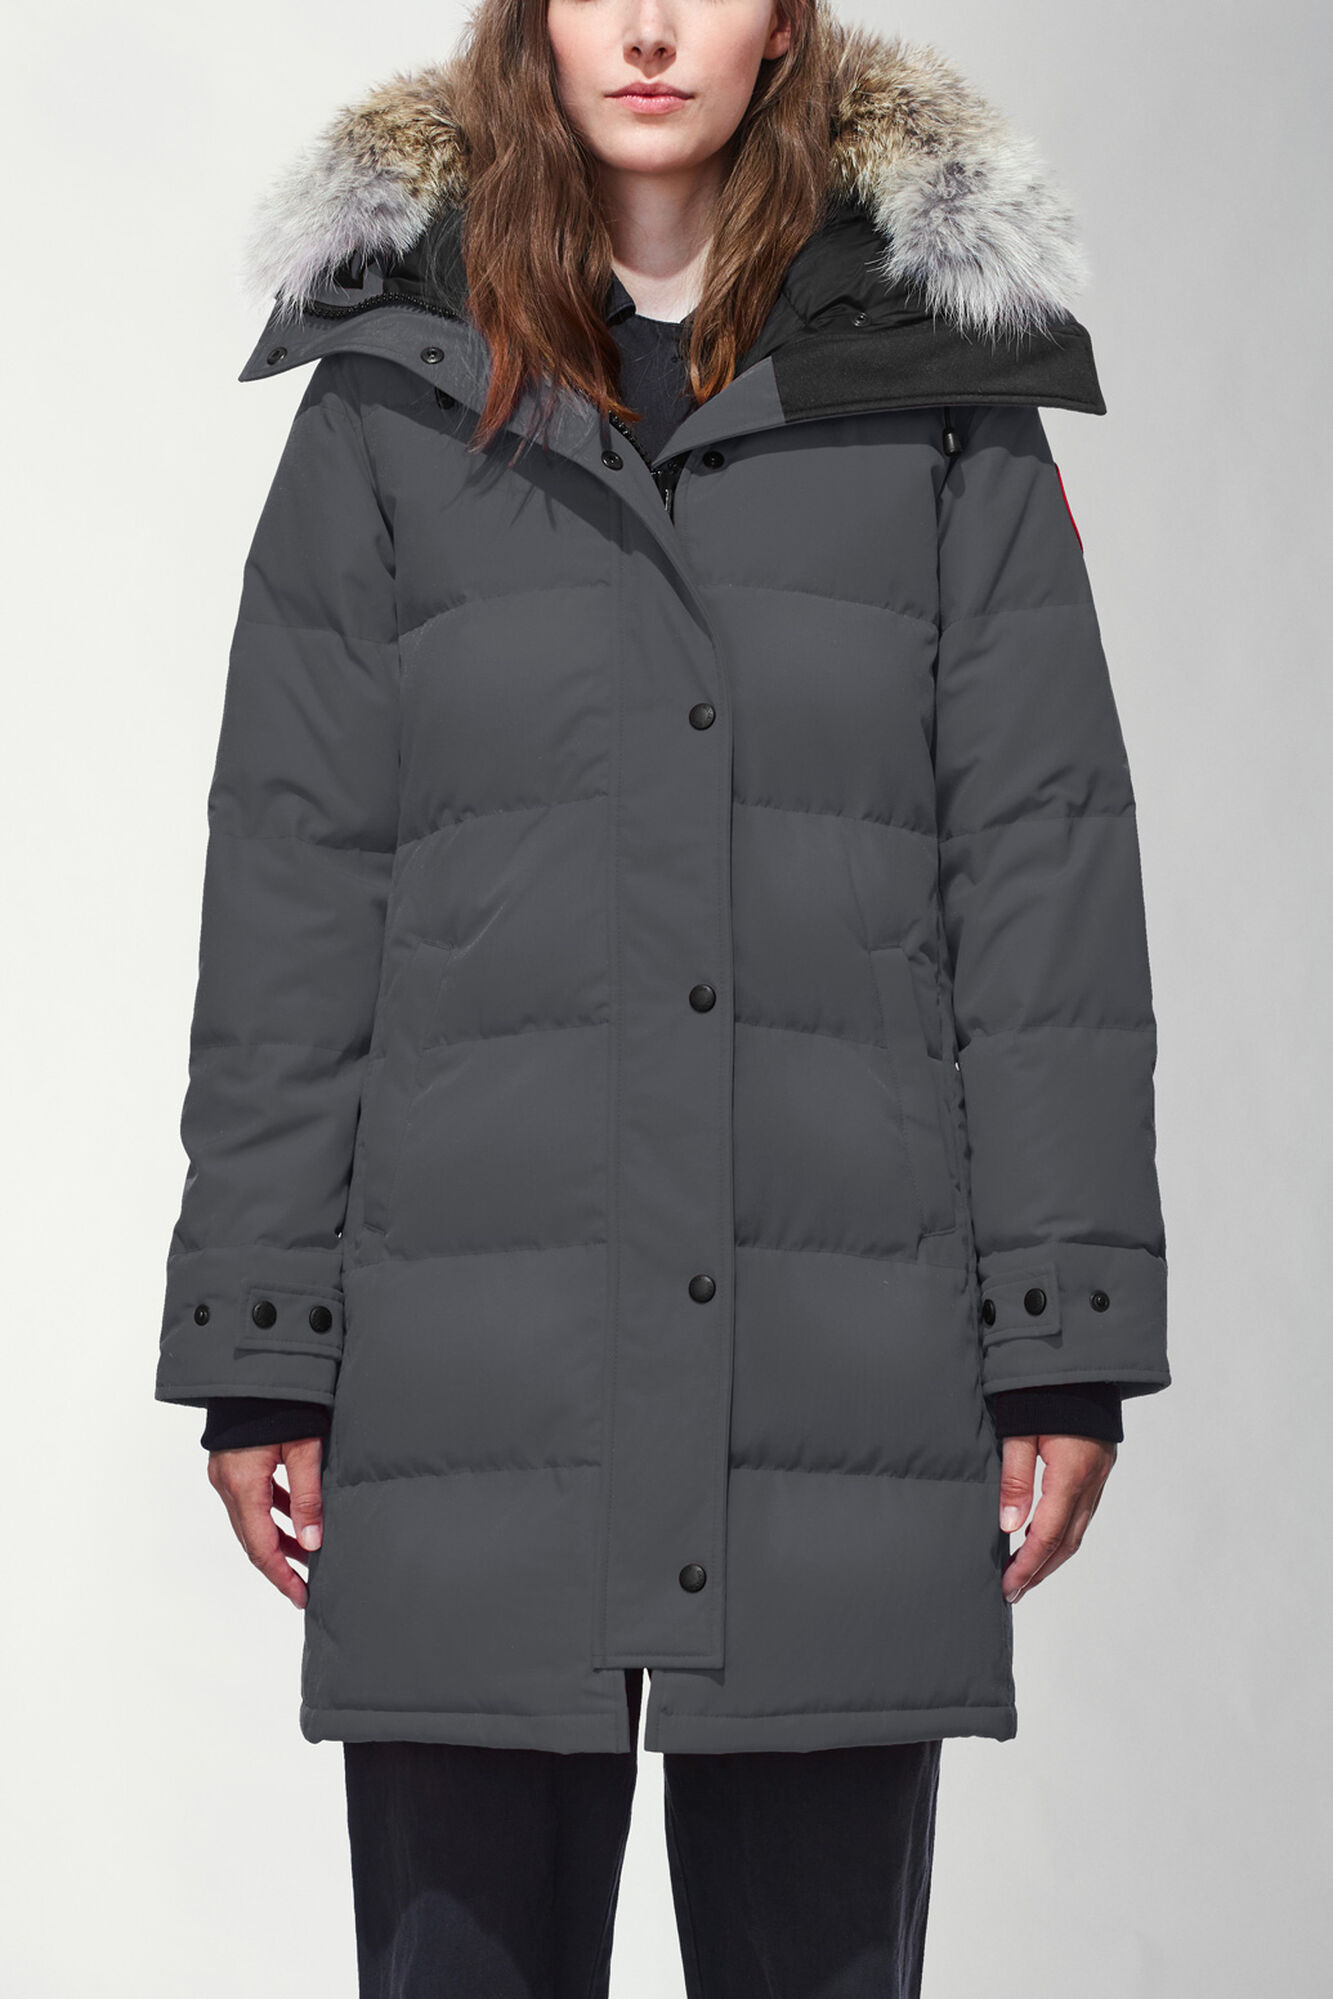 shelburne parka canada goose. Black Bedroom Furniture Sets. Home Design Ideas